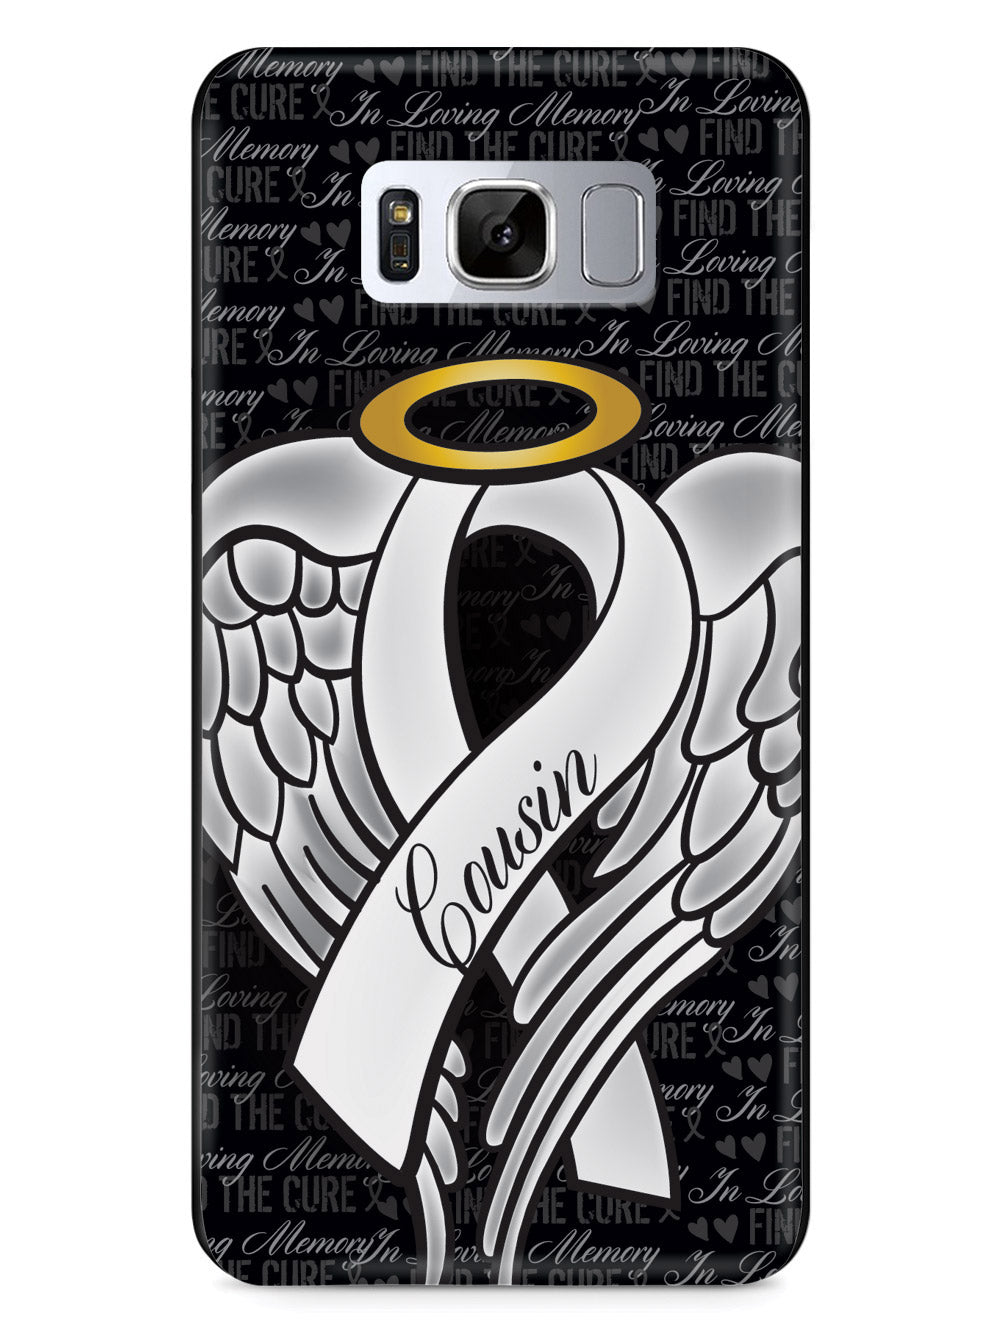 In Loving Memory of My Cousin - White Ribbon Case